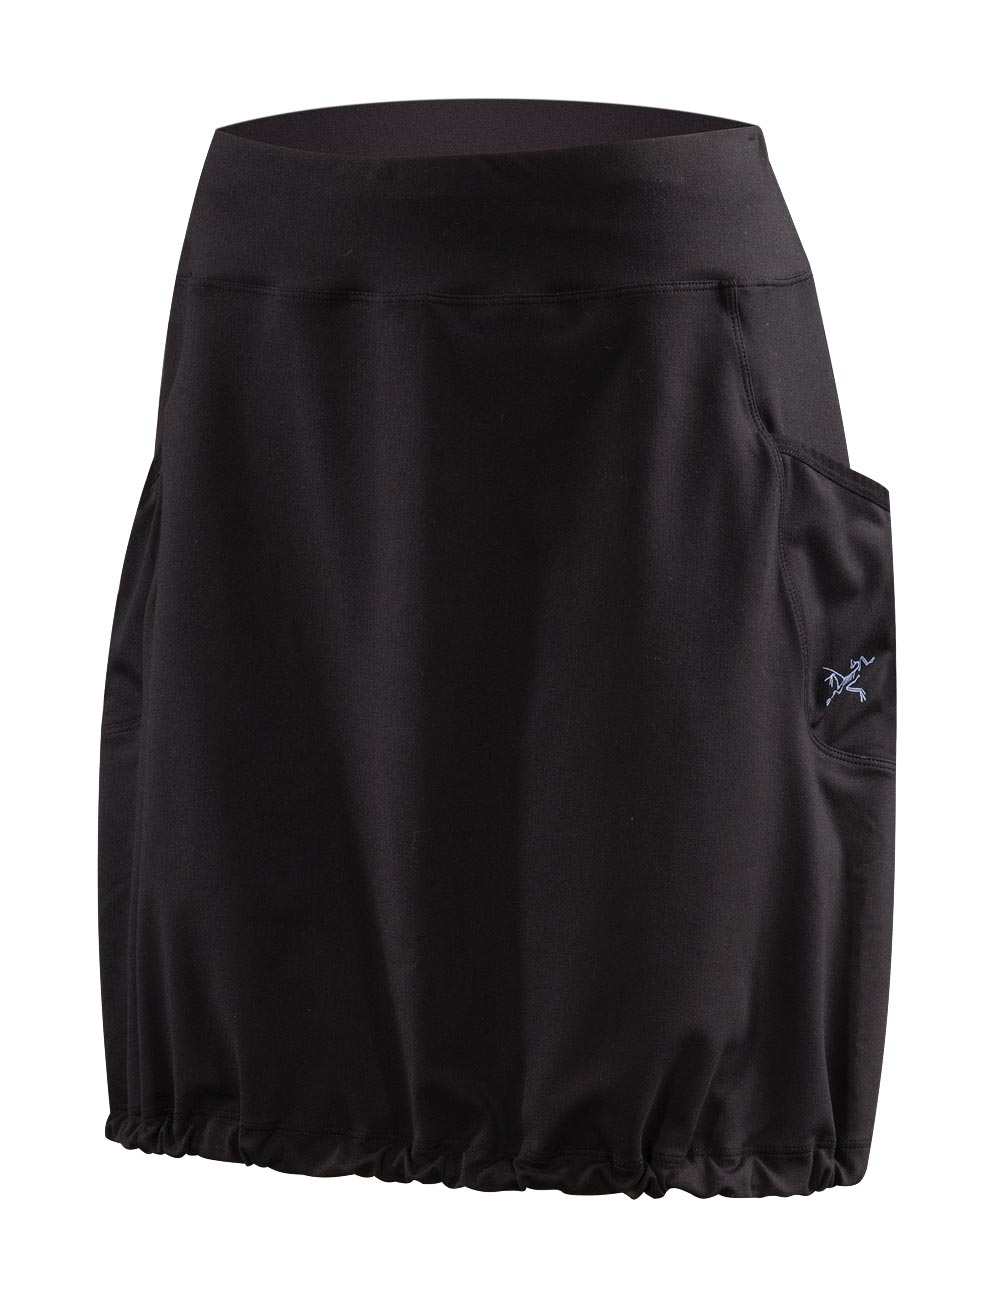 Arcteryx Black Corbela Skirt - New